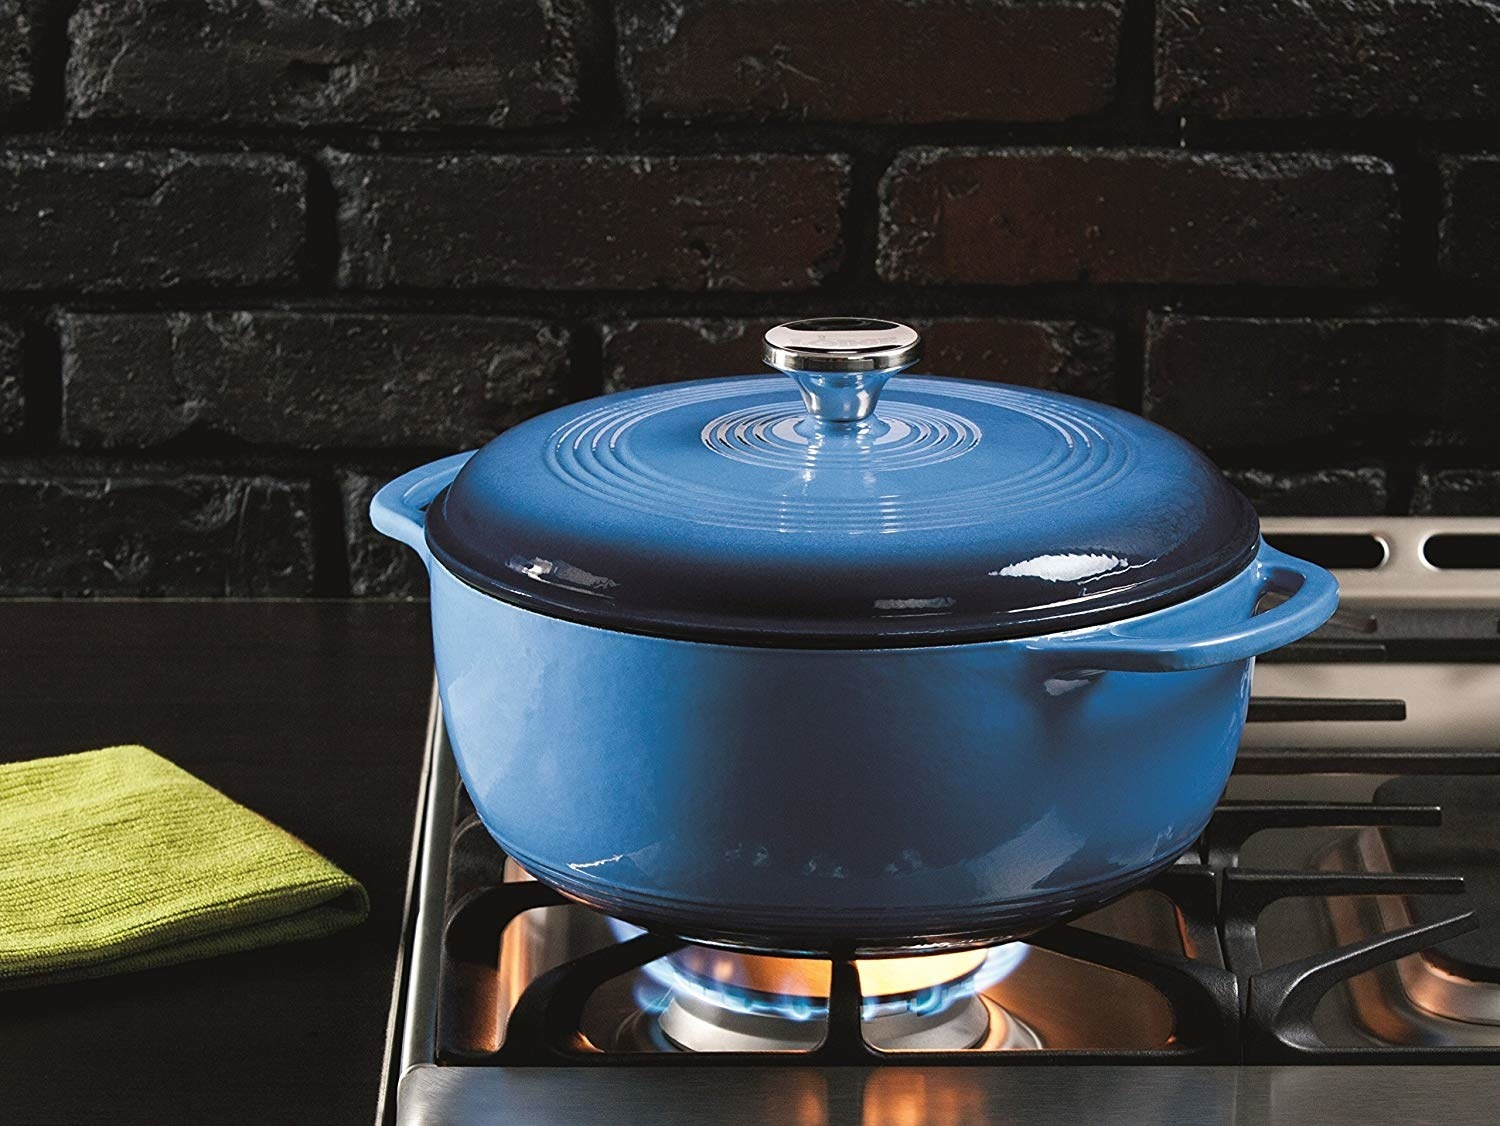 deep blue dutch oven on a stovetop